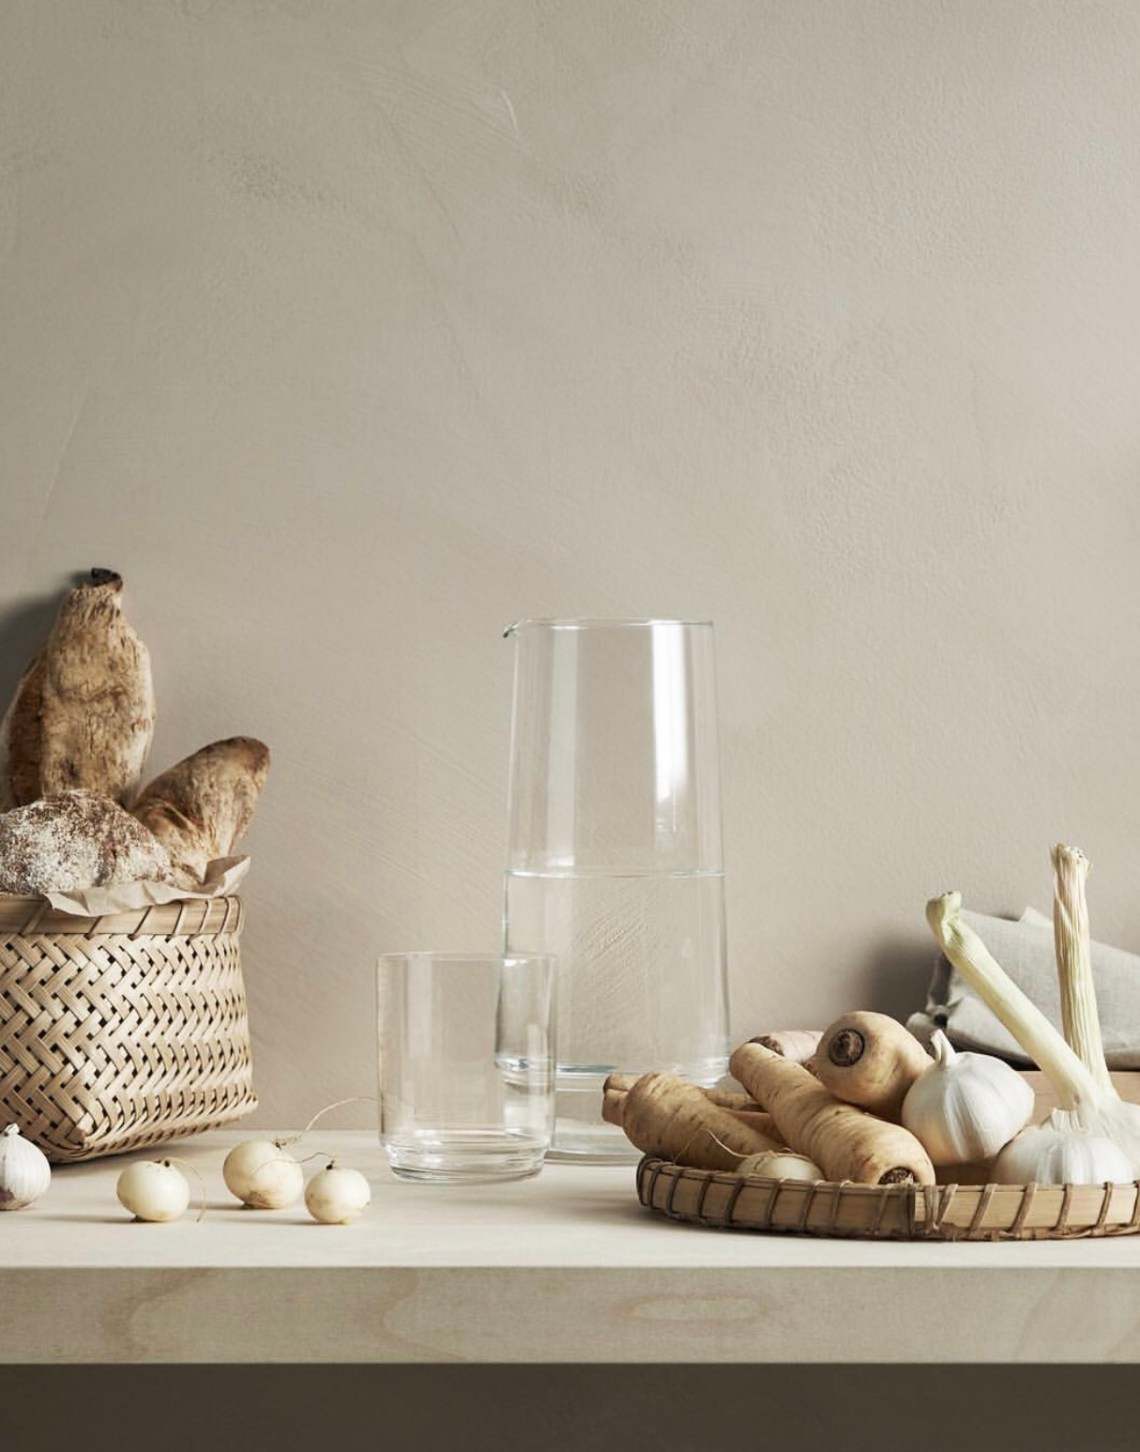 Warm kitchen style from H&M Home